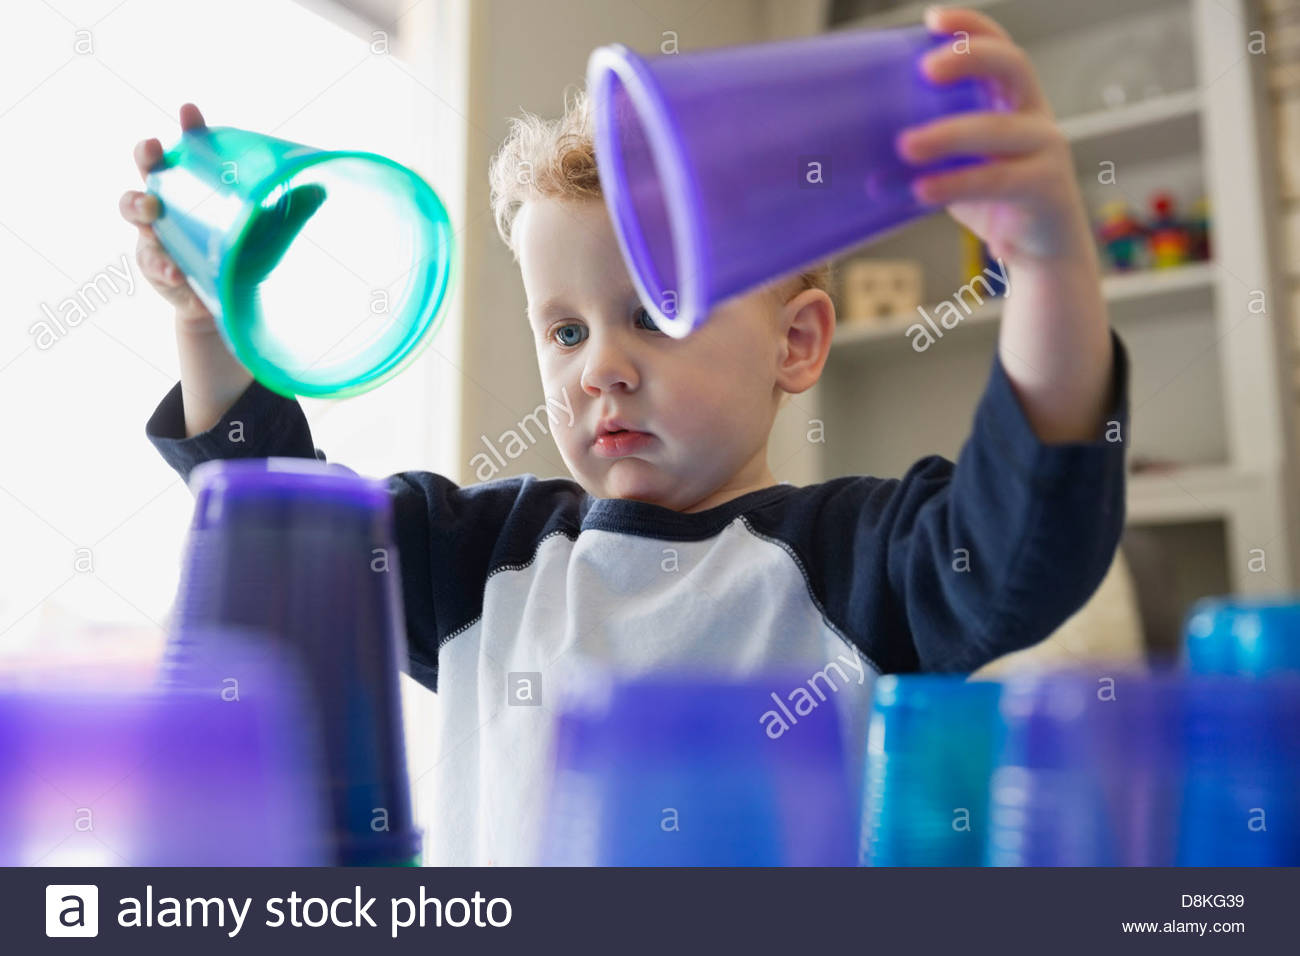 Young boy stacking plastic cups at home Stock Photo